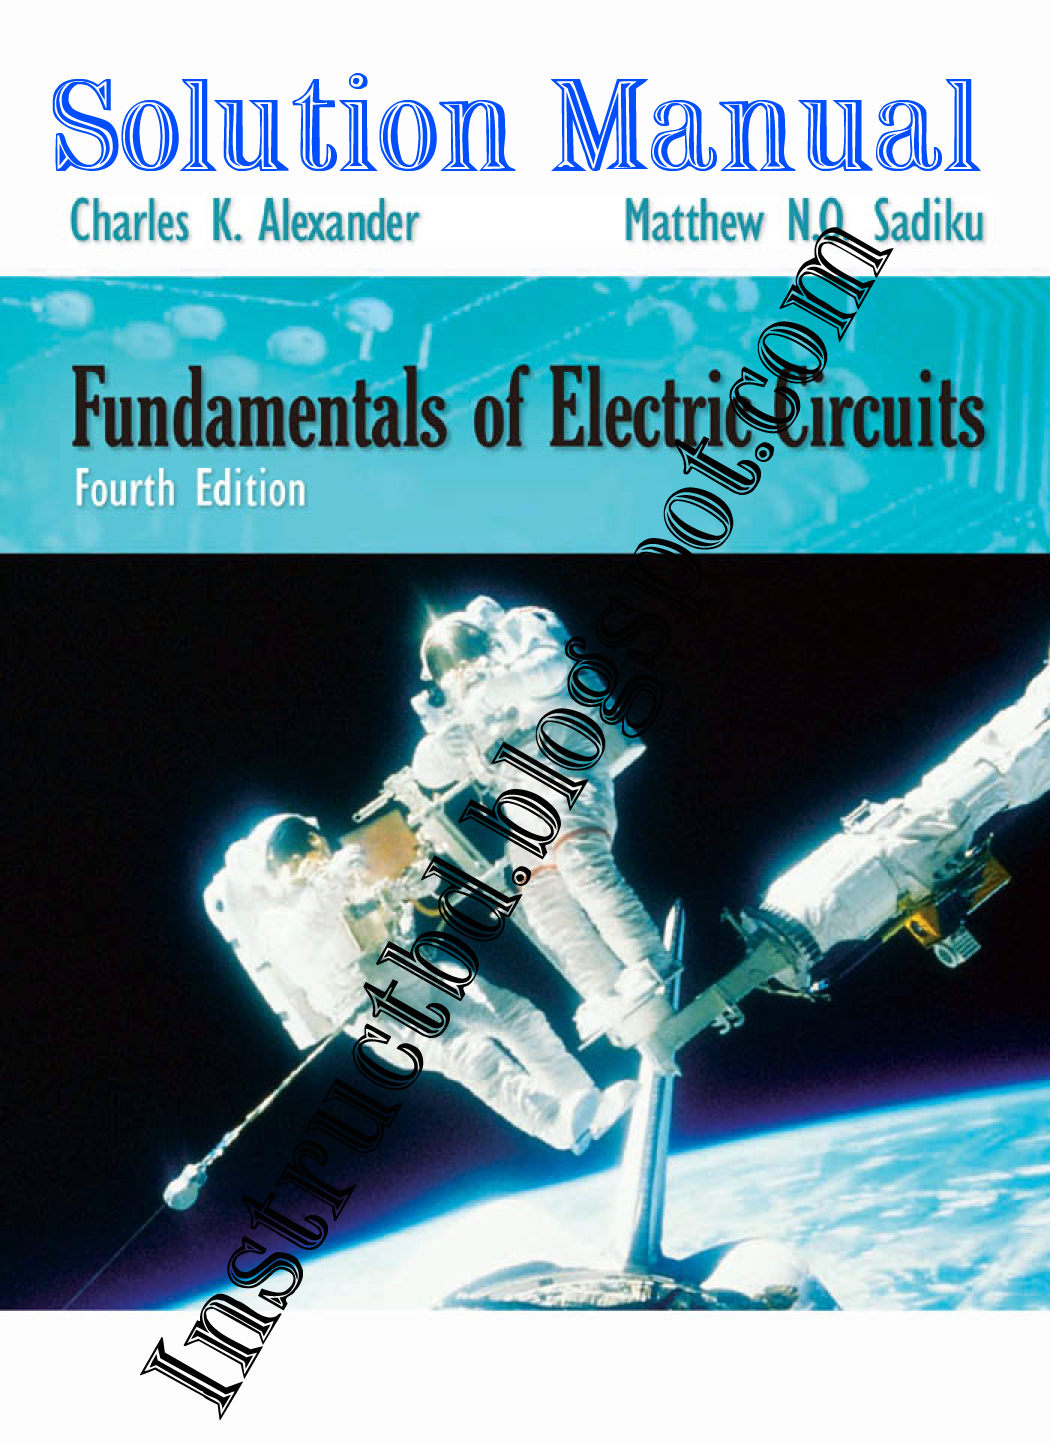 [Solution] Fundamentals of Electric Circuits, 4th Edition by Alexander & M  sadiku